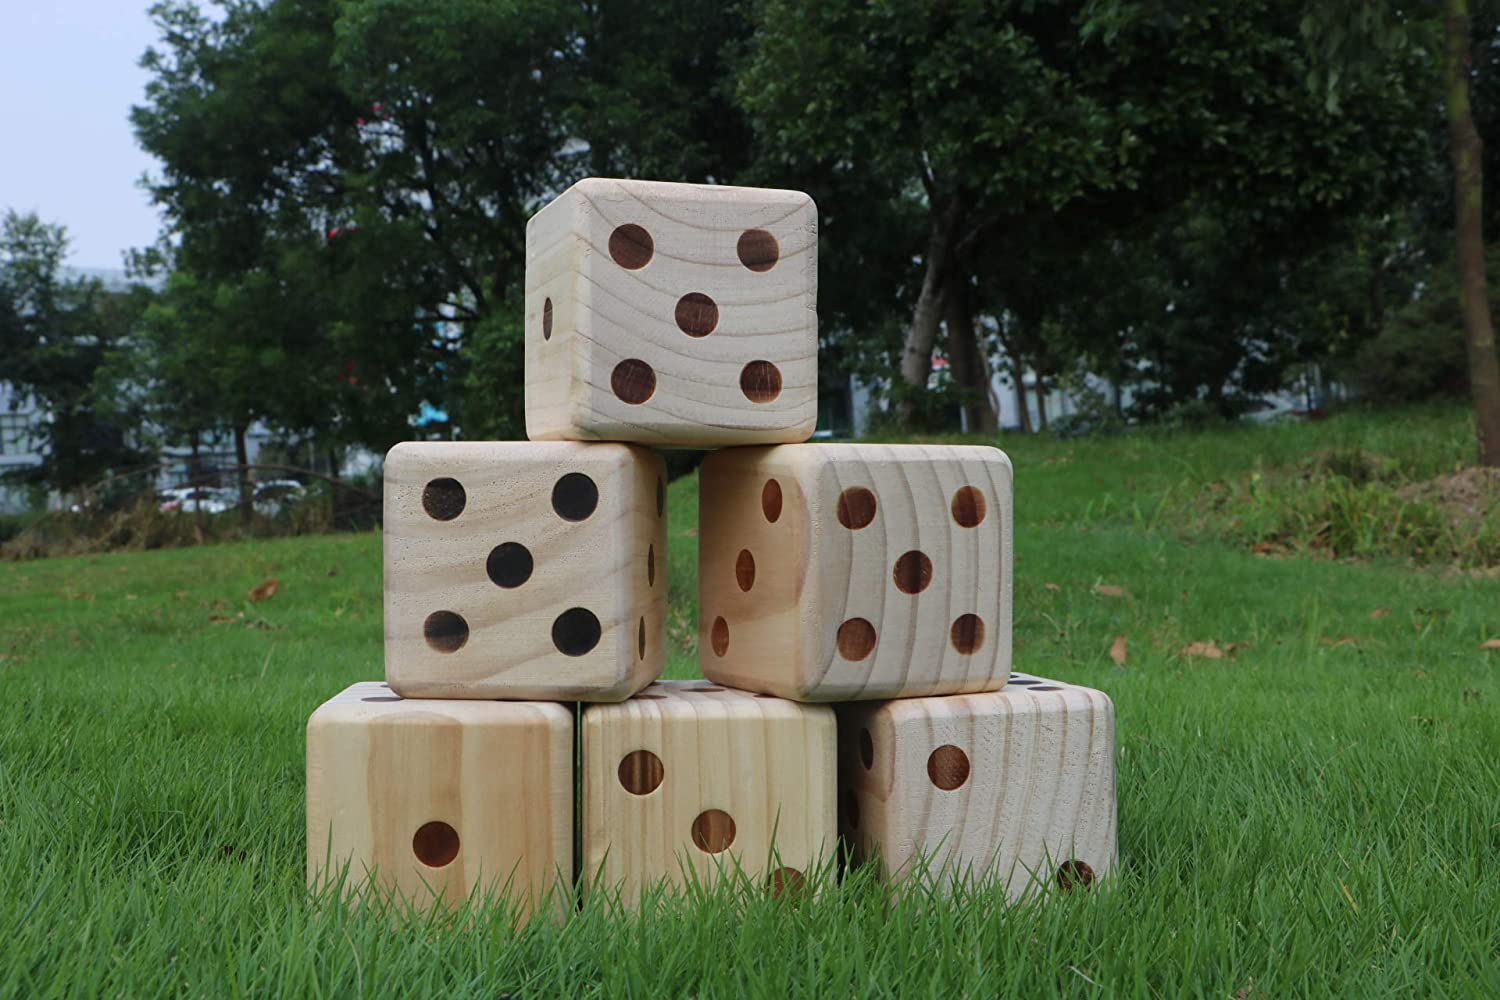 DRAROAD Giant Wooden Yard Dice Outdoor Game with Bonus Yardzee and Farkle Scoresheets and Carrying Bag for All Ages,/Great Lawn and Family Game